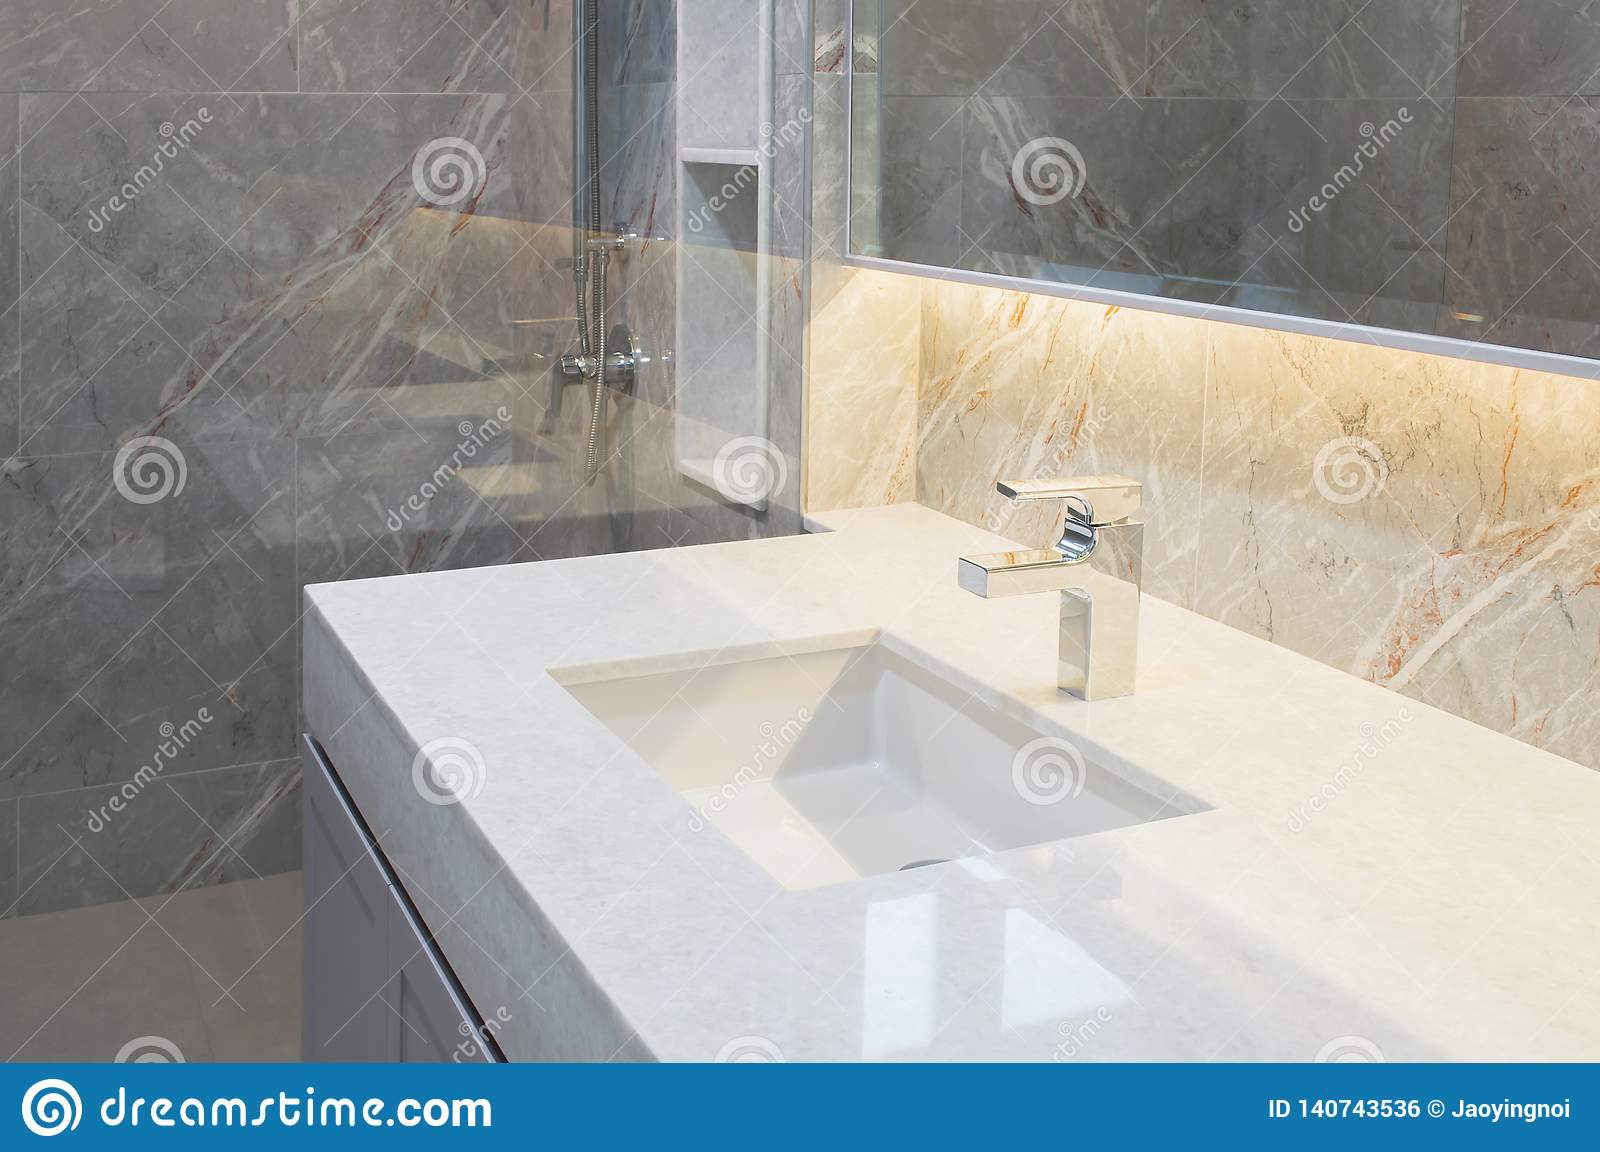 Counter Top White Marble With Washbasin Wall And Floor Beige Grey Marble Stone Interior Design Of Restroom Or Toilet Background Re Stock Photo Image Of Decoration Elegance 140743536